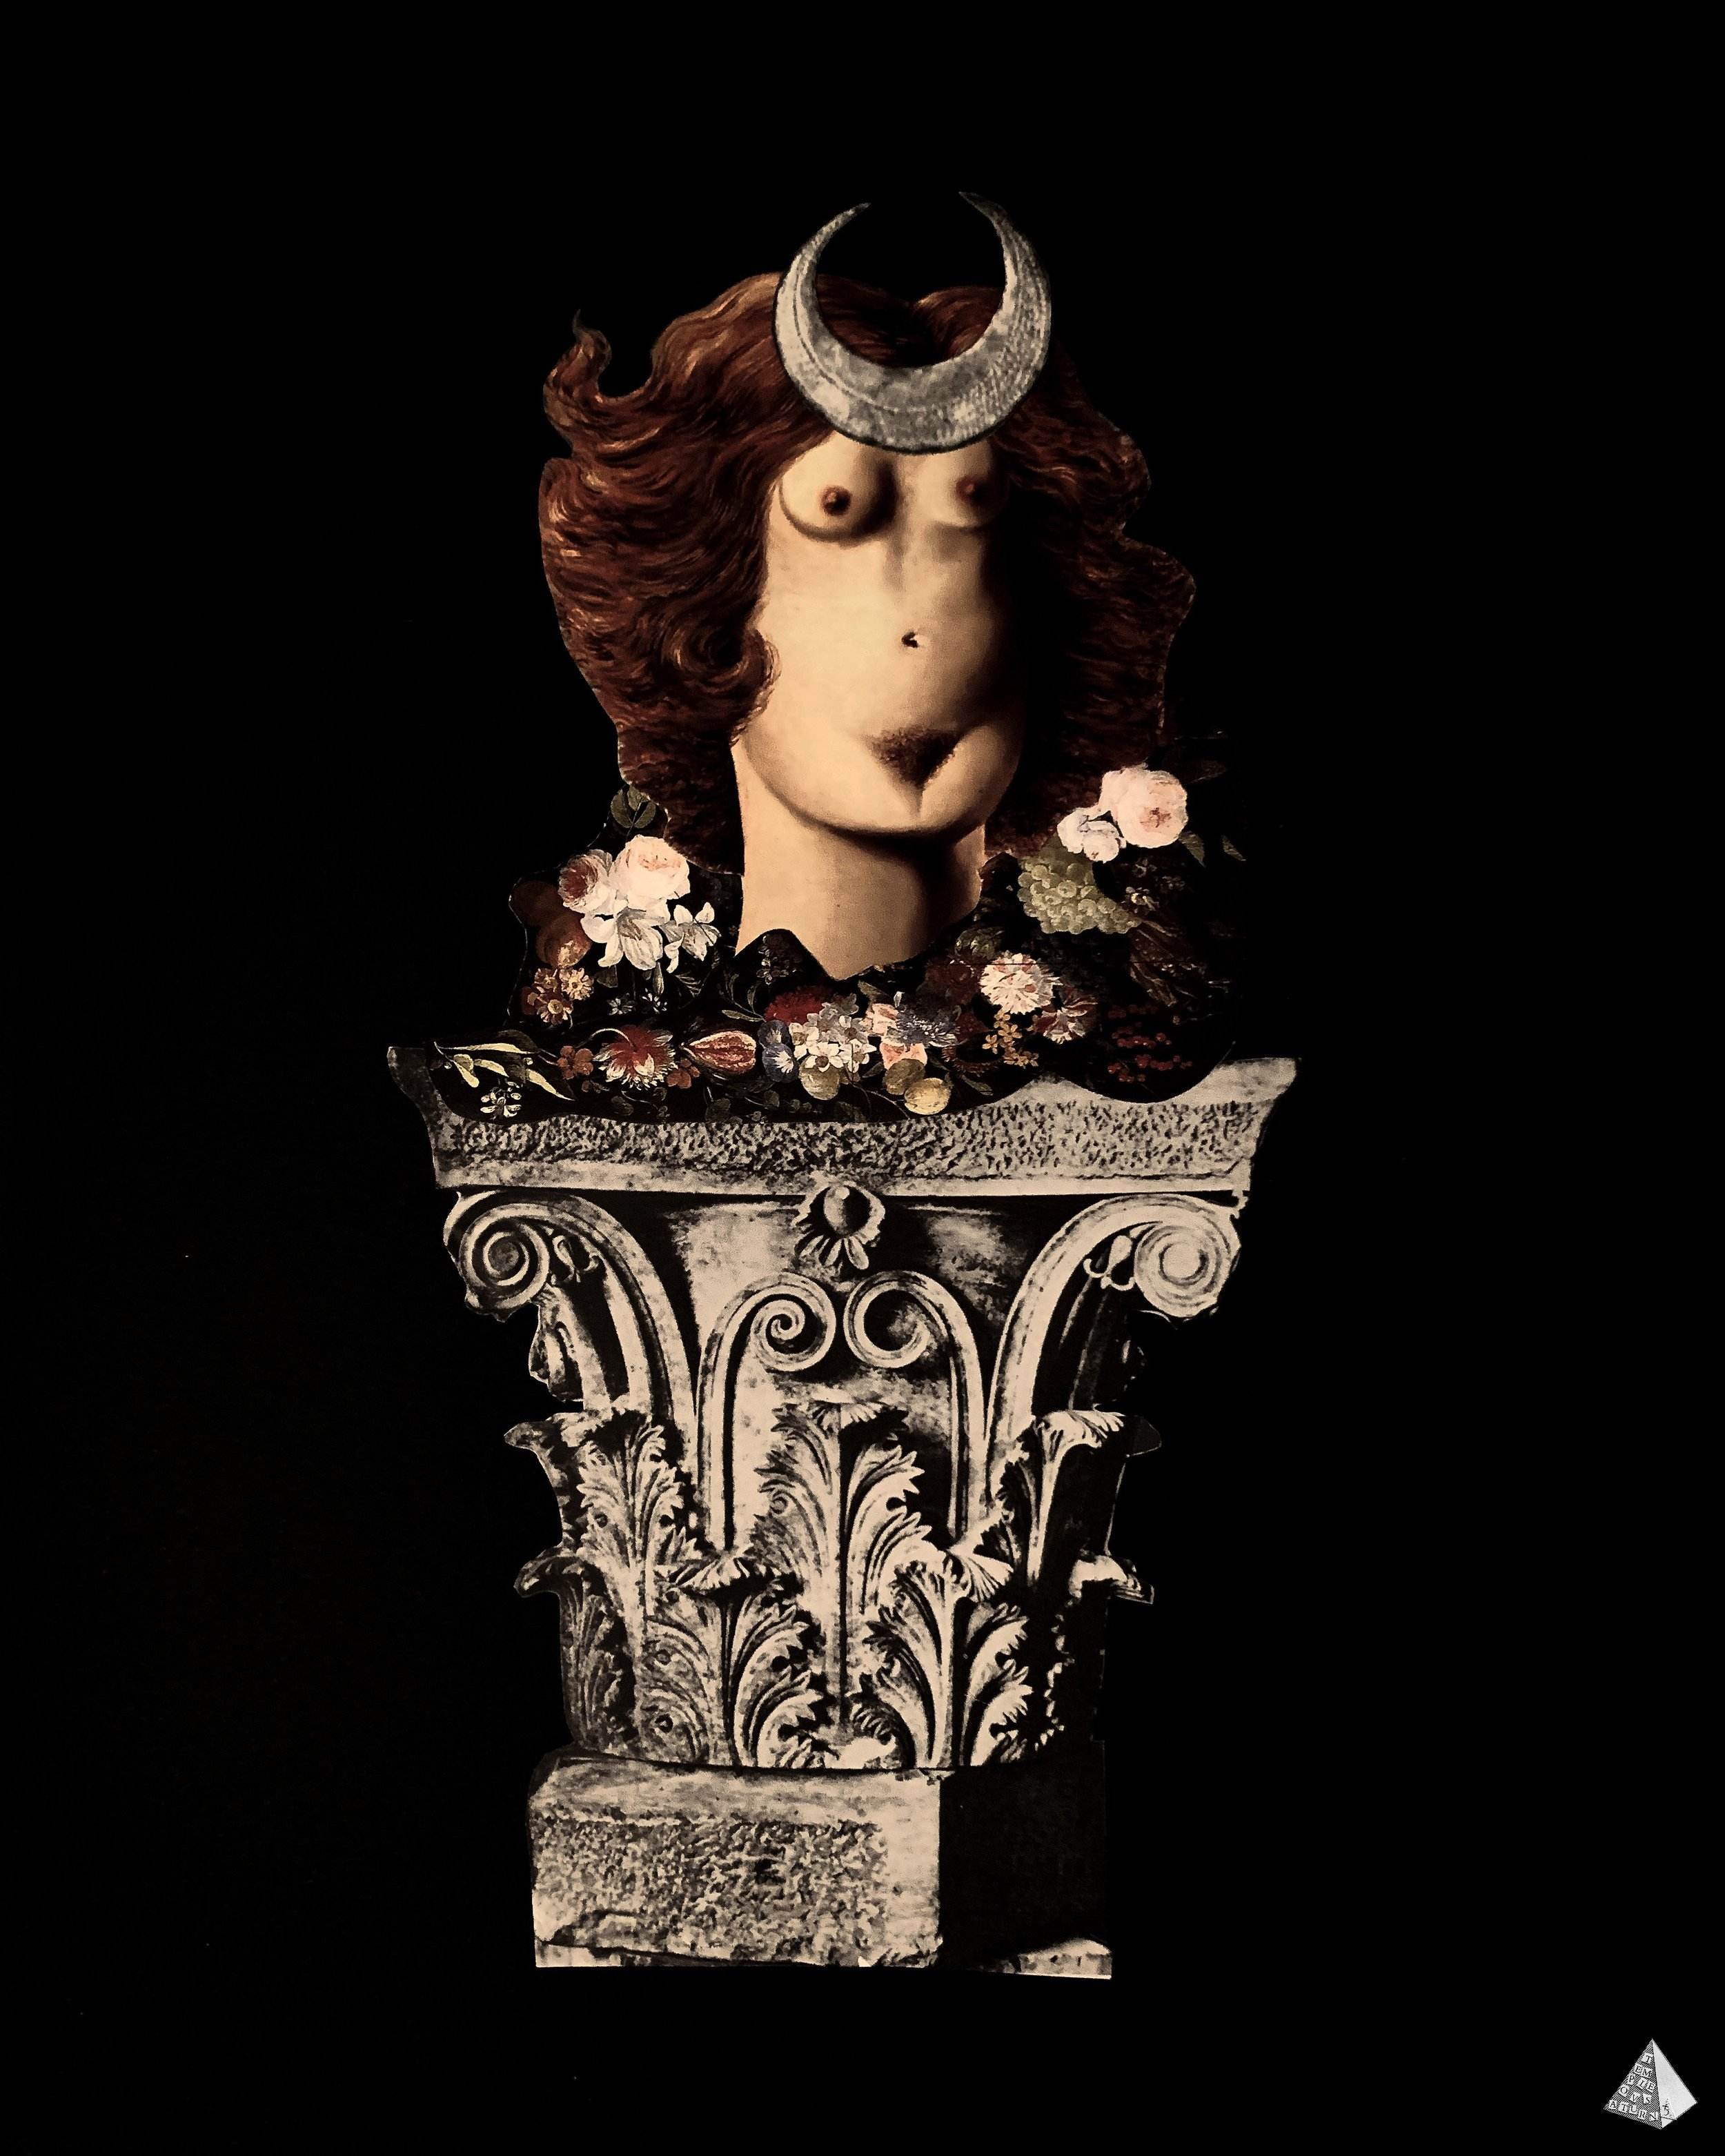 Les Fleurs du Mal: Spleen et Ideal by Joan Pope (Temple ov Saturn)